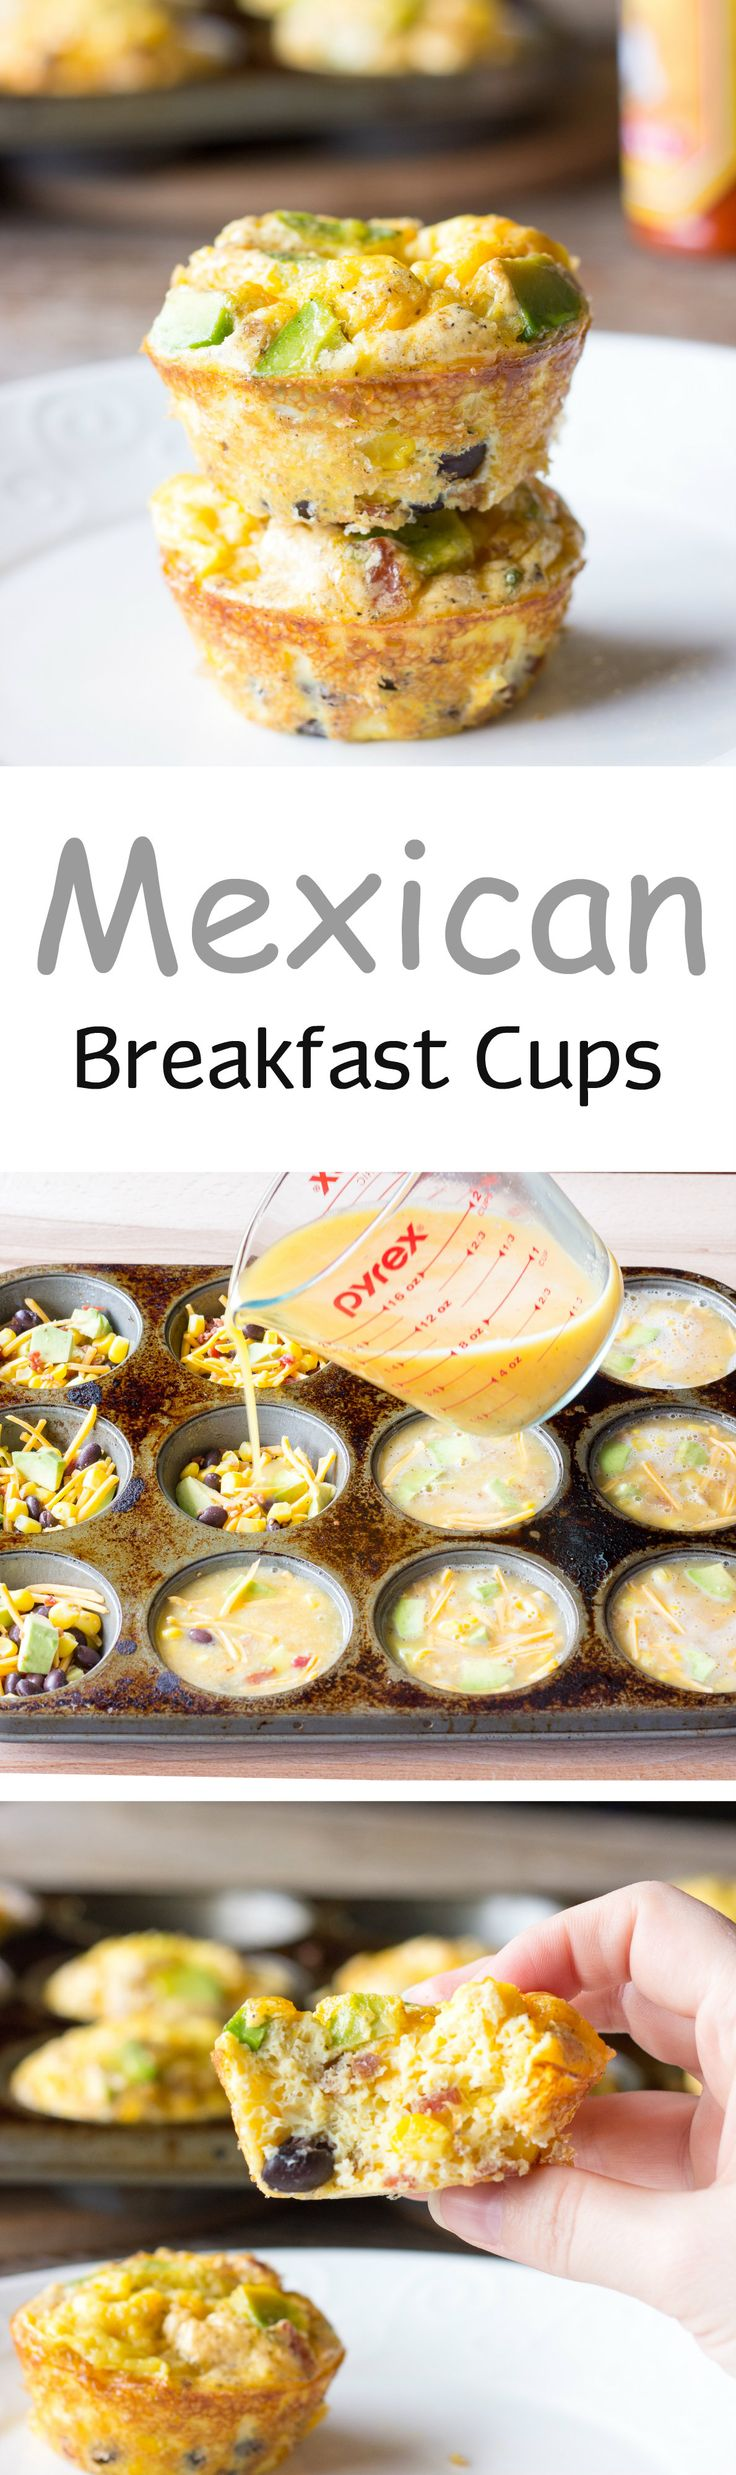 Mexican Breakfast Cups - Eggs, bacon, cheese, corn, black beans, and avocado baked in a muffin tin.